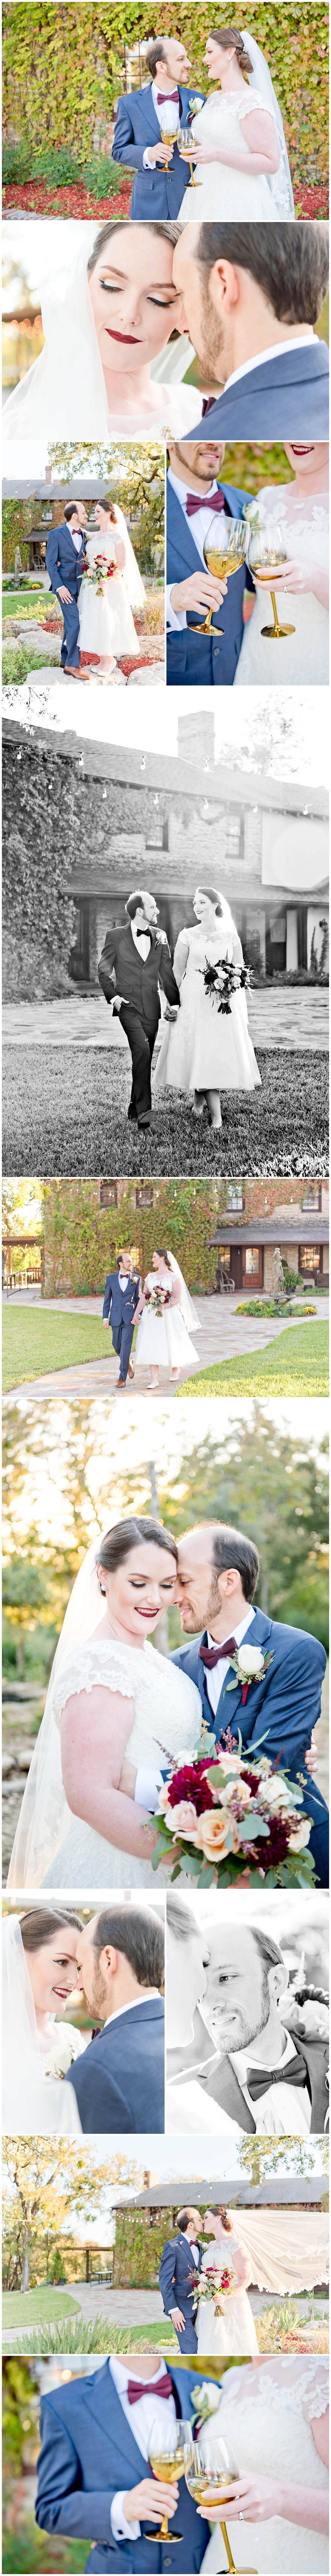 Sunset Bride and Groom Portraits Fall Wedding Fort Worth Texas